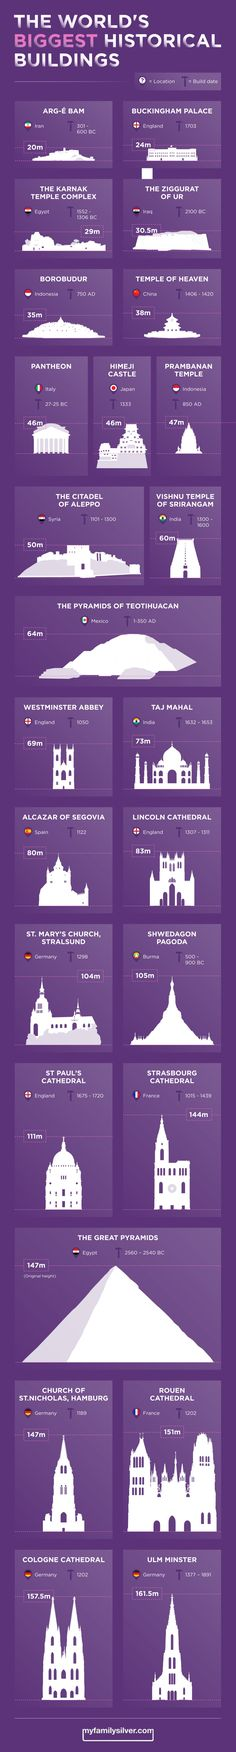 The World's Biggest Historical Buildings Infographic